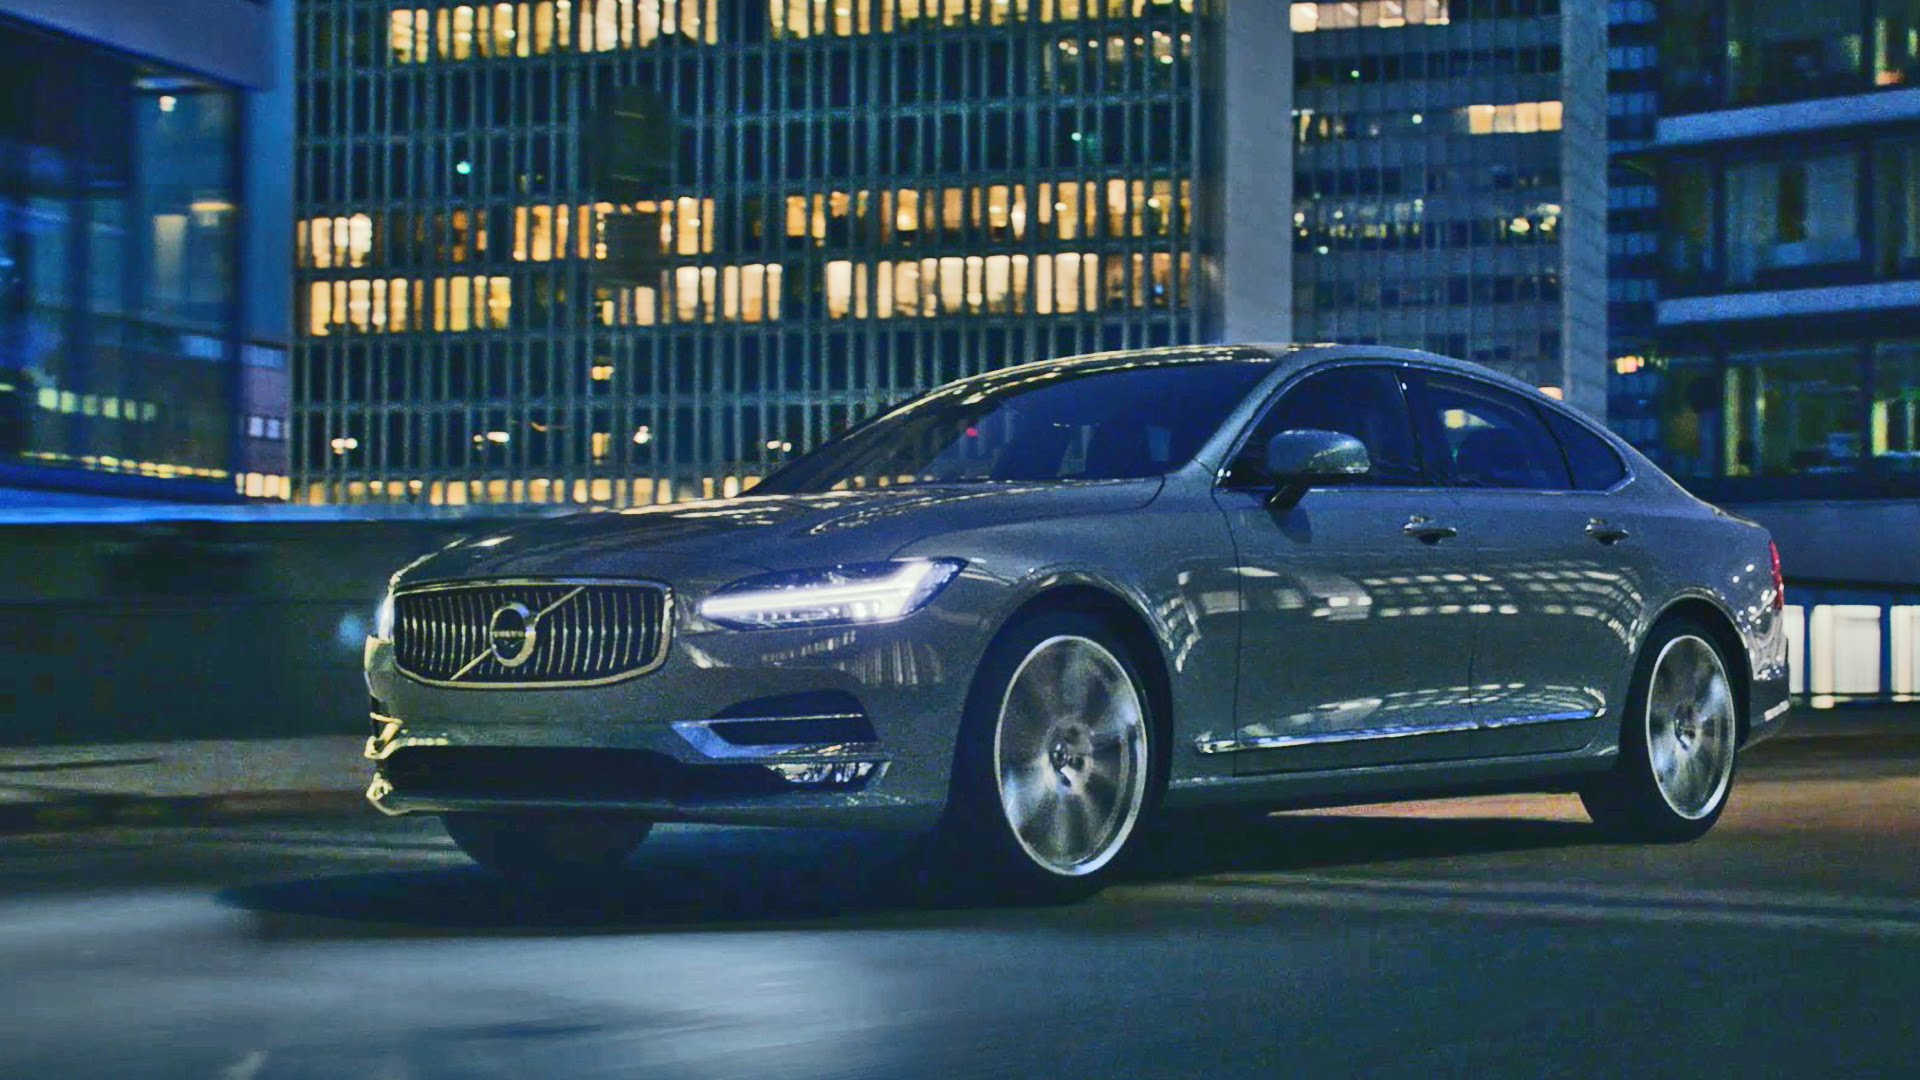 Volvo S80 2017 >> Volvo S90 HD Wallpapers | 7wallpapers.net